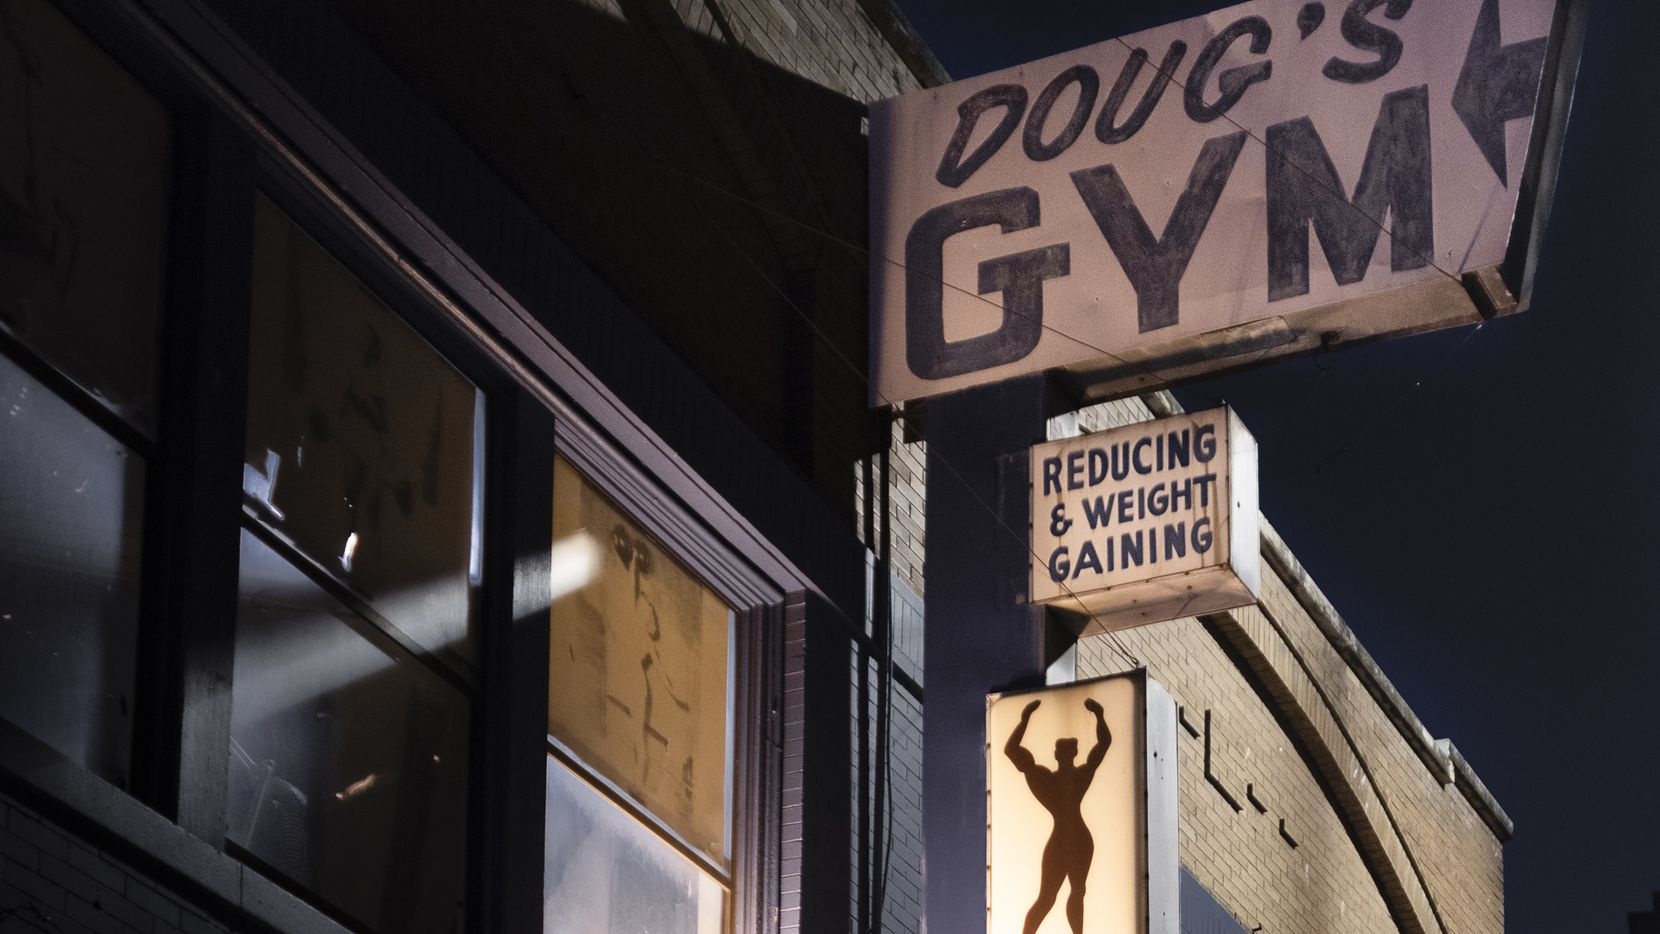 The new book, 'Doug's Gym: The Last of Its Kind' by Norm Diamond from Kehrer Verlag press documents the famous now-closed gym in downtown Dallas owned by Doug Eidd.